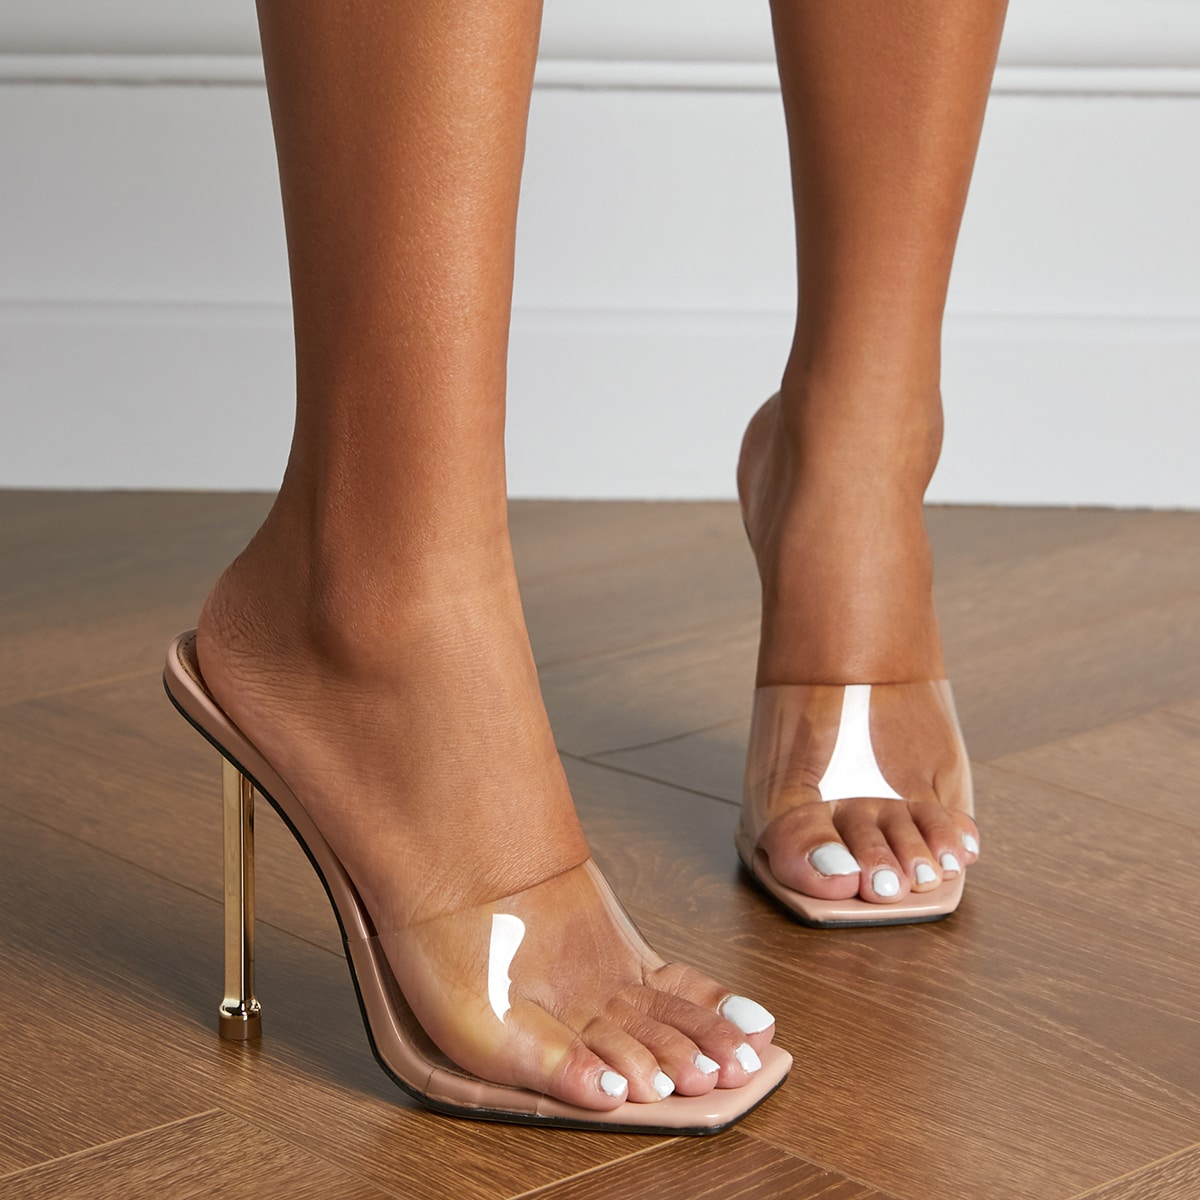 Clear Stiletto Heeled Mules, SHEIN  - buy with discount